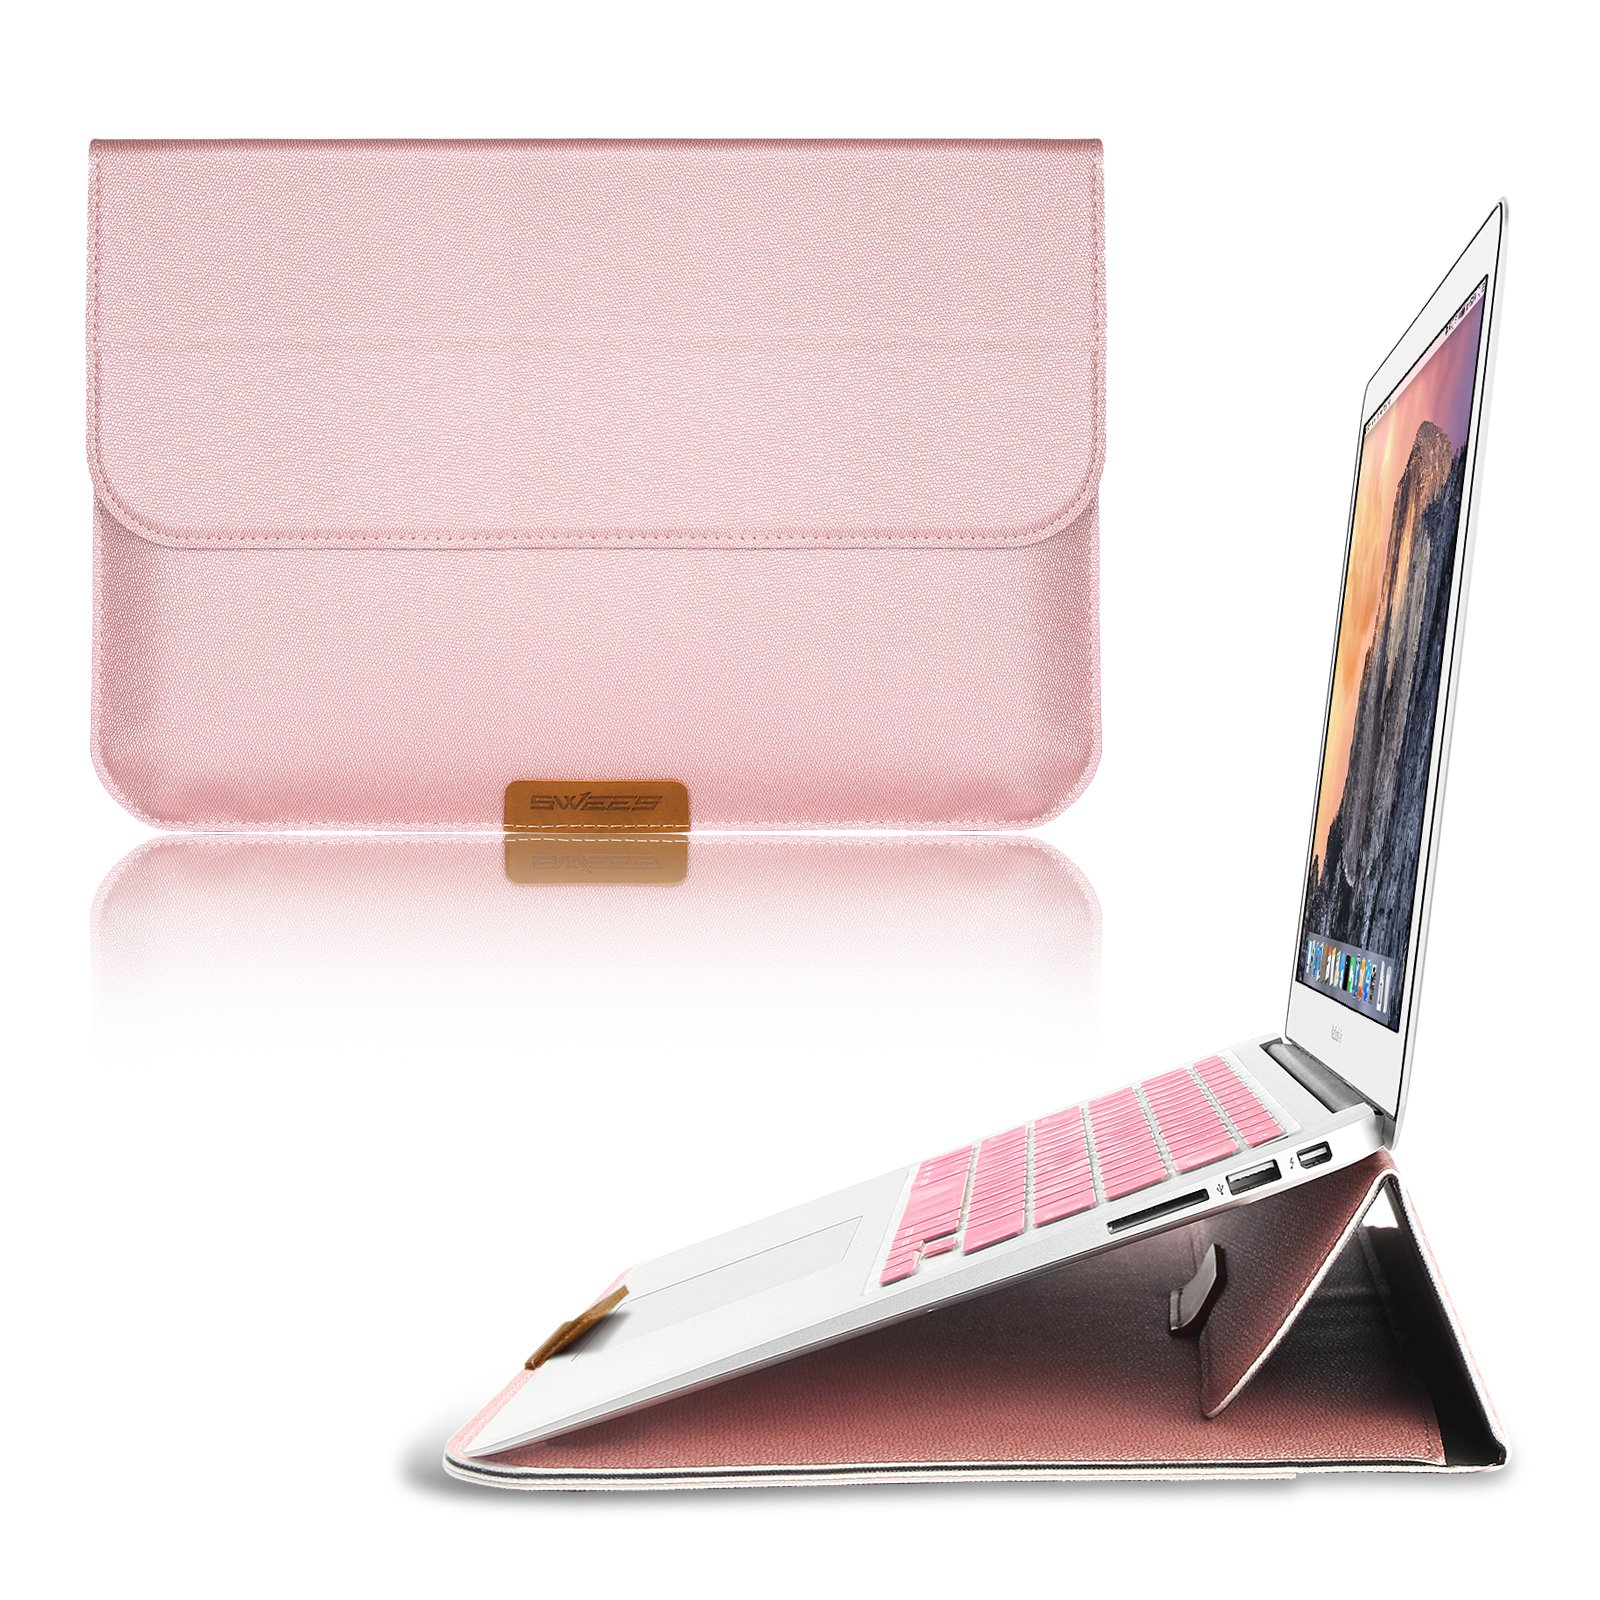 Macbook 12 Inch Case Sleeve With Stand Function Swees 12 Inch Apple New Macbo.. 18